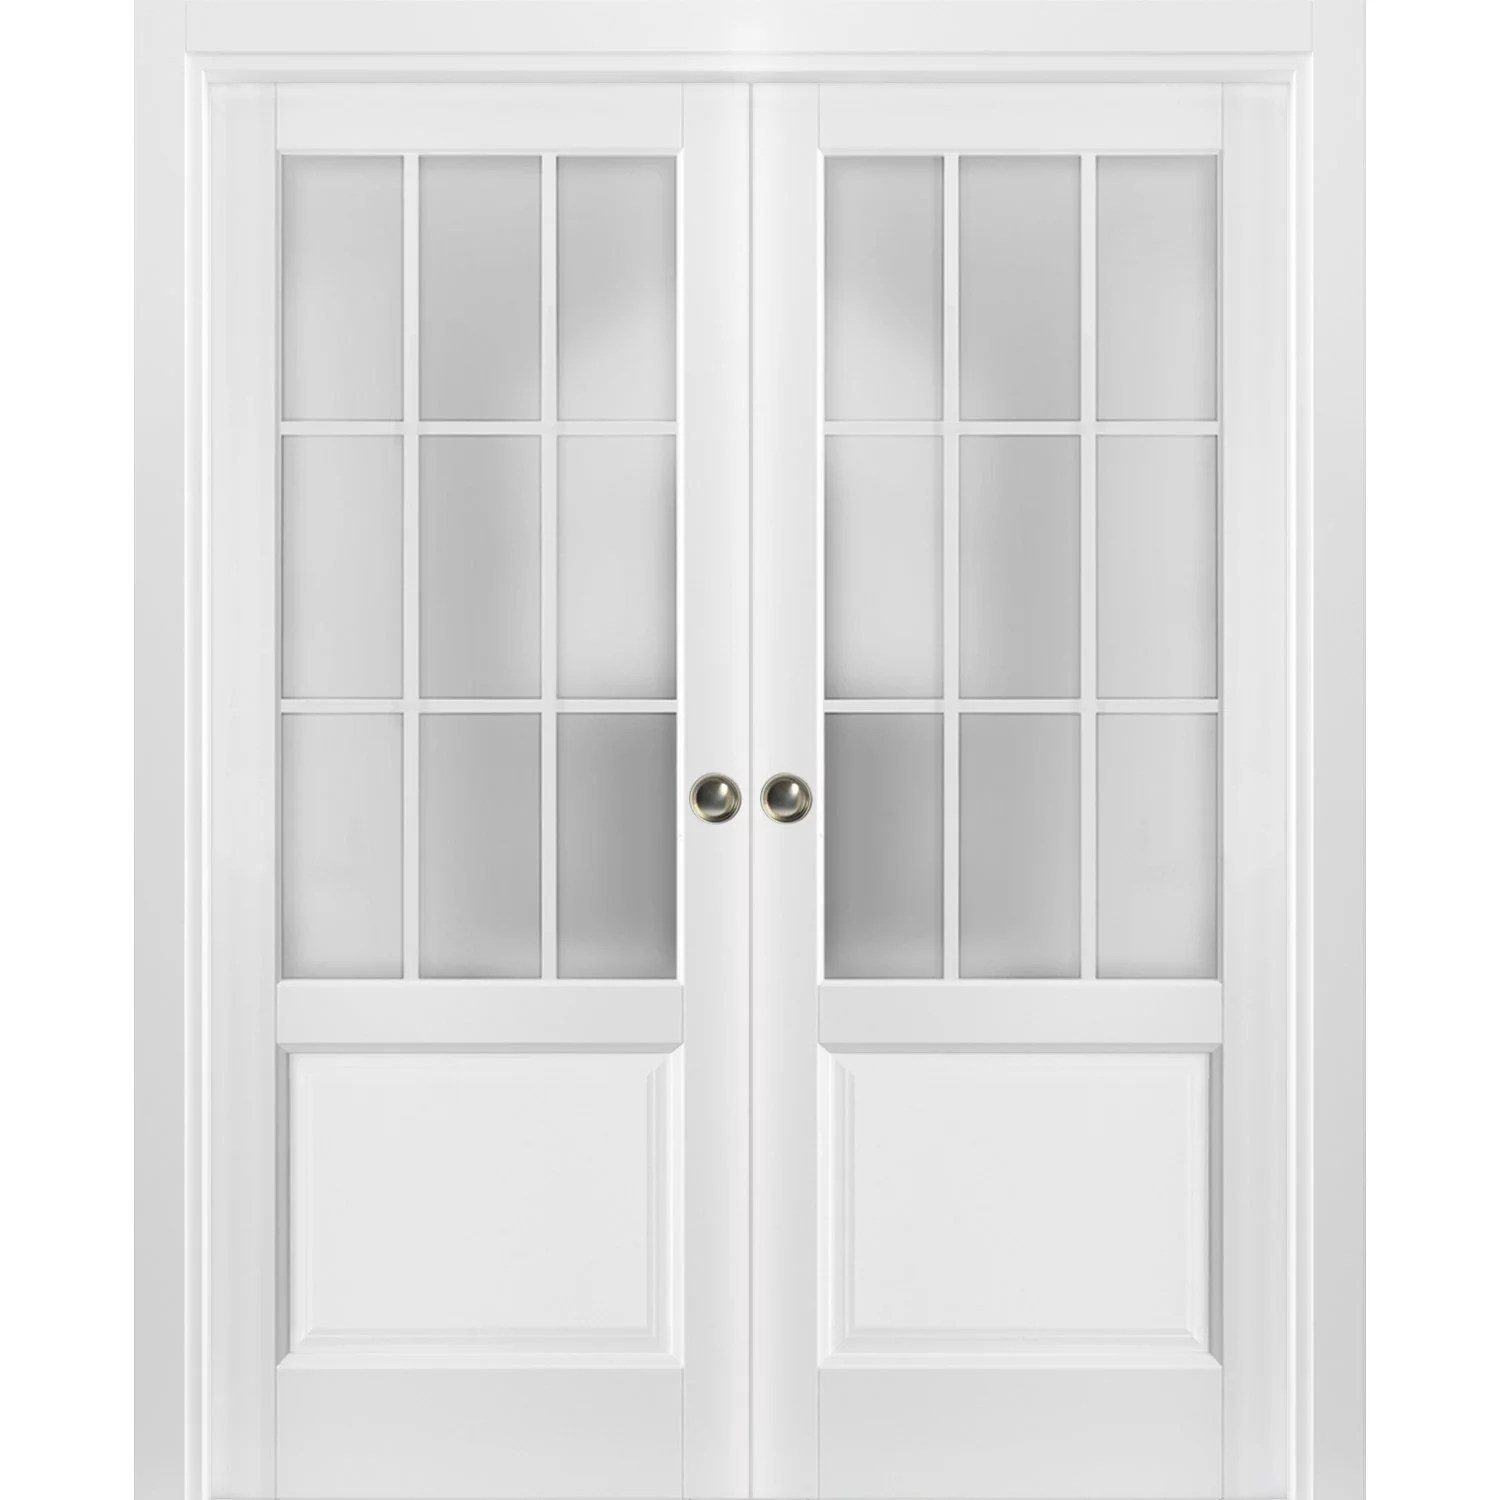 sliding french double pocket doors 60 x 80 inches frosted glass 9 lites